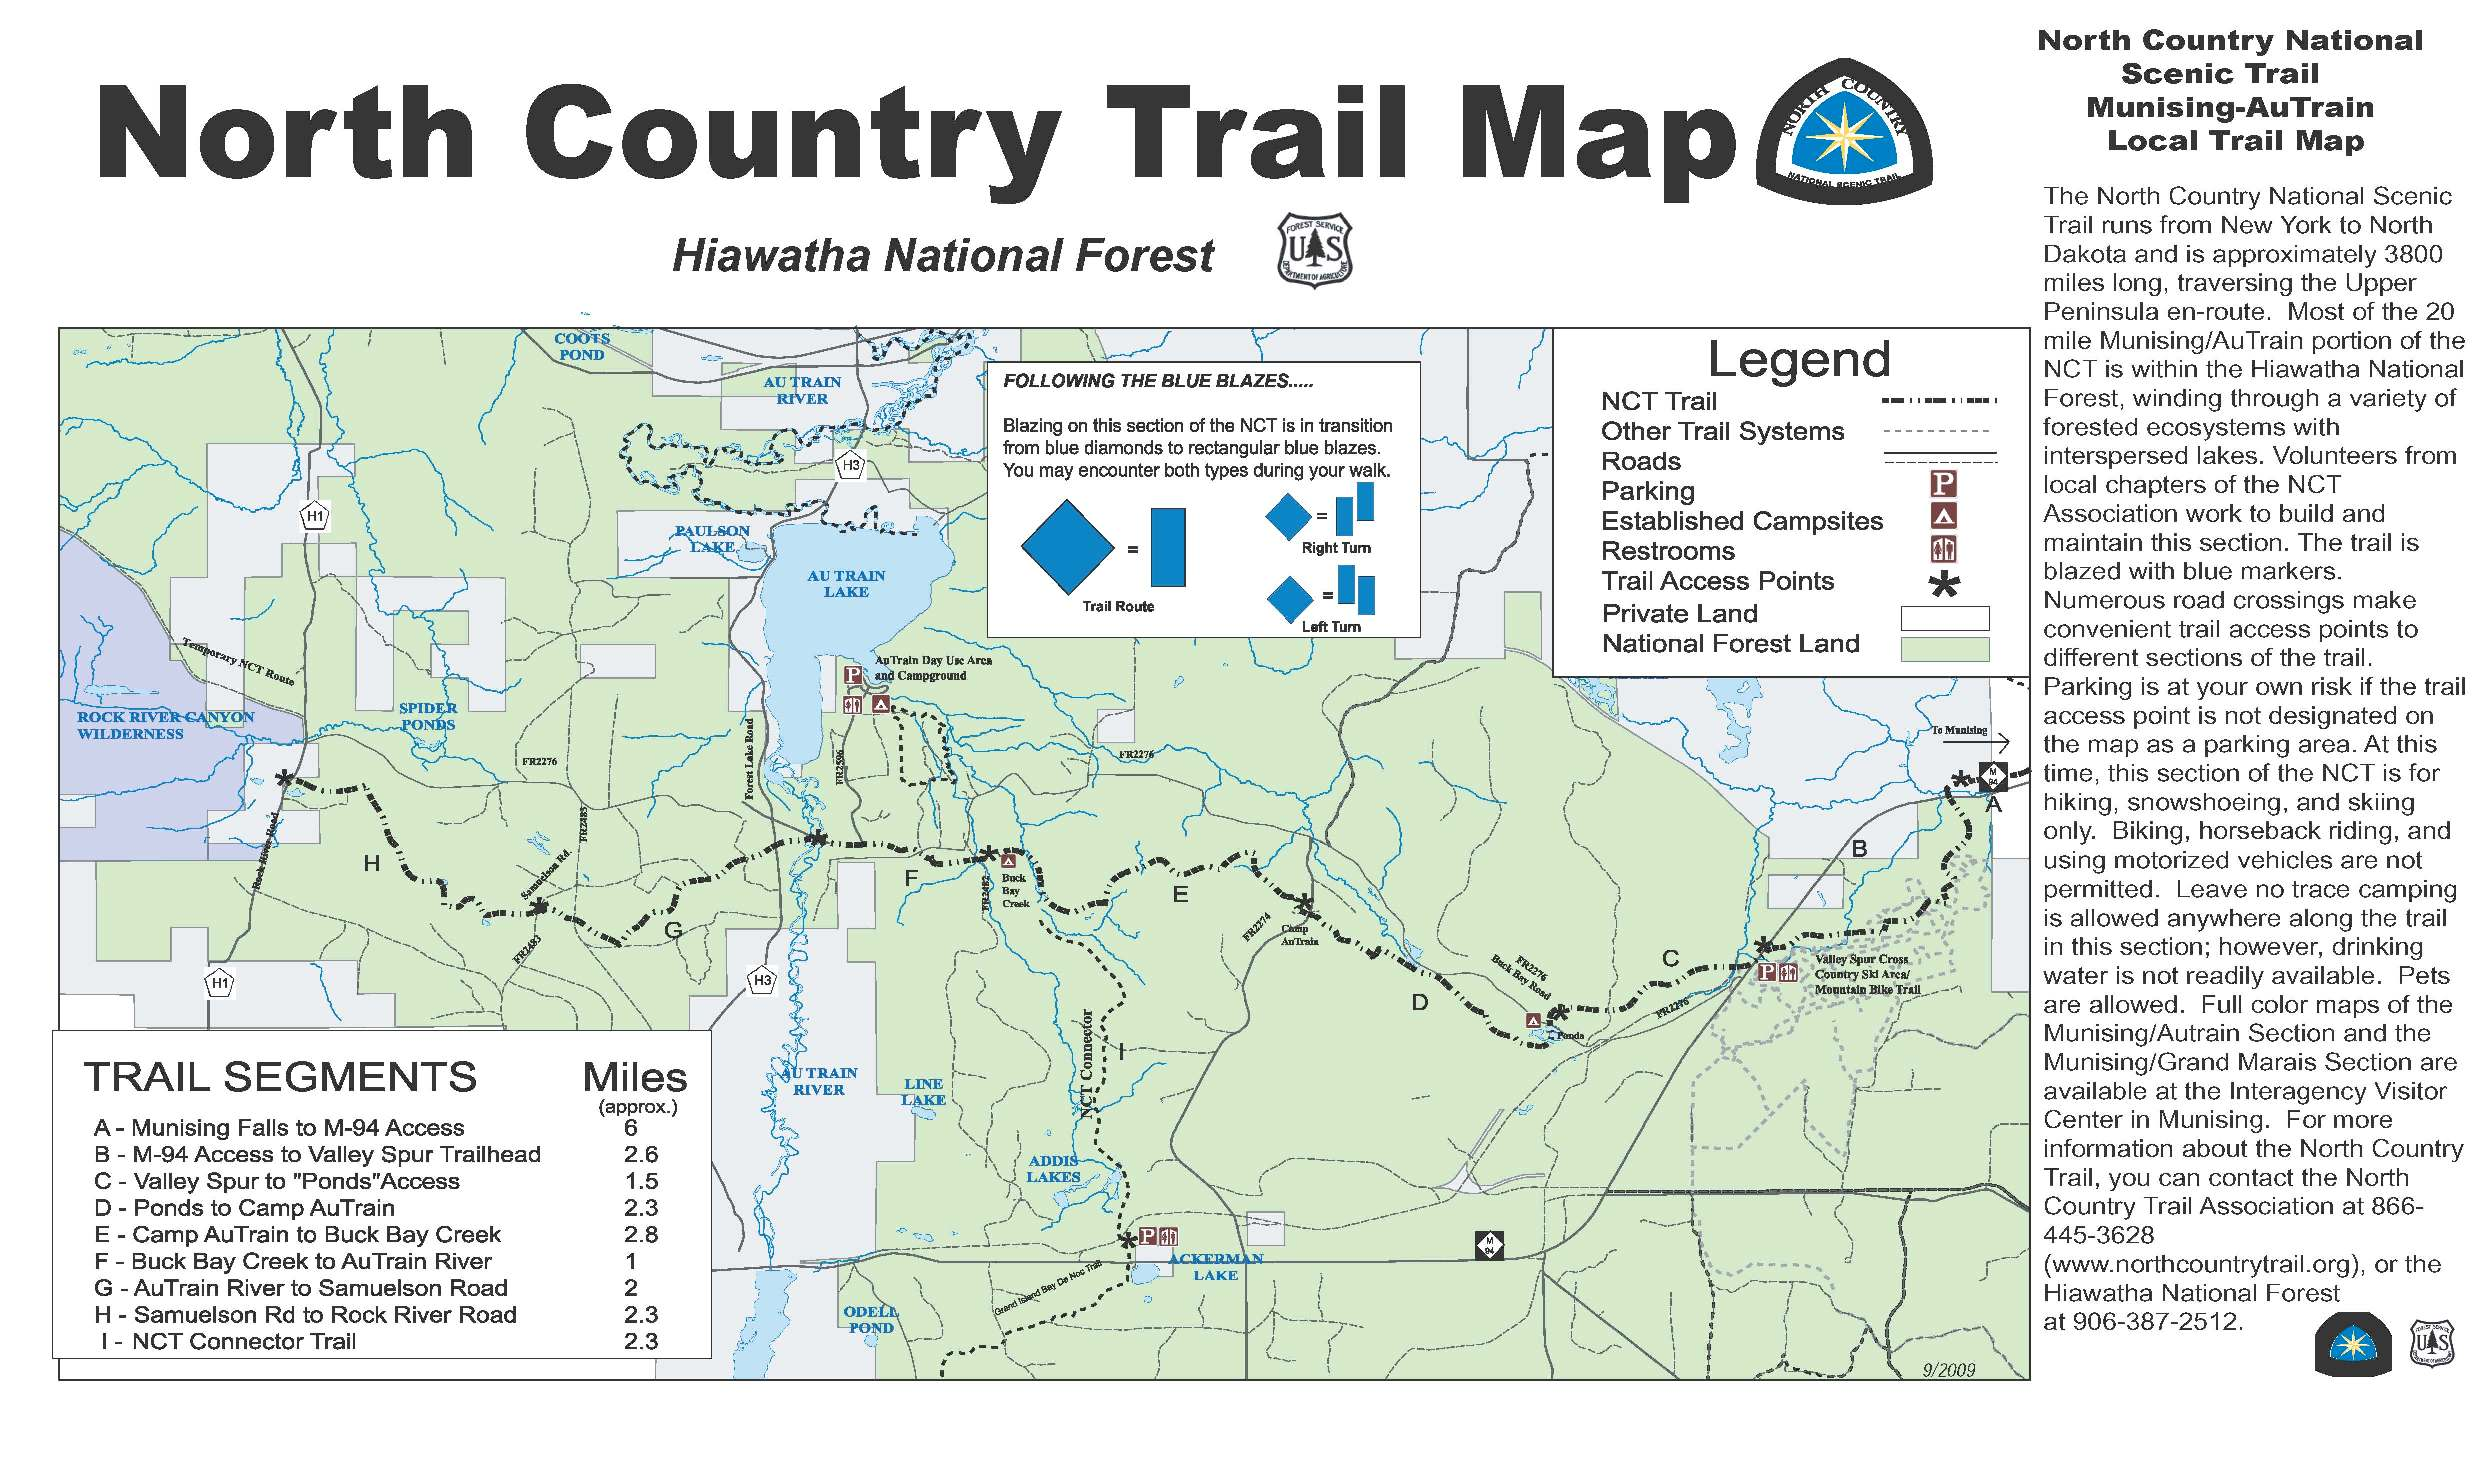 North Country Trail Map on West side of Hiawatha